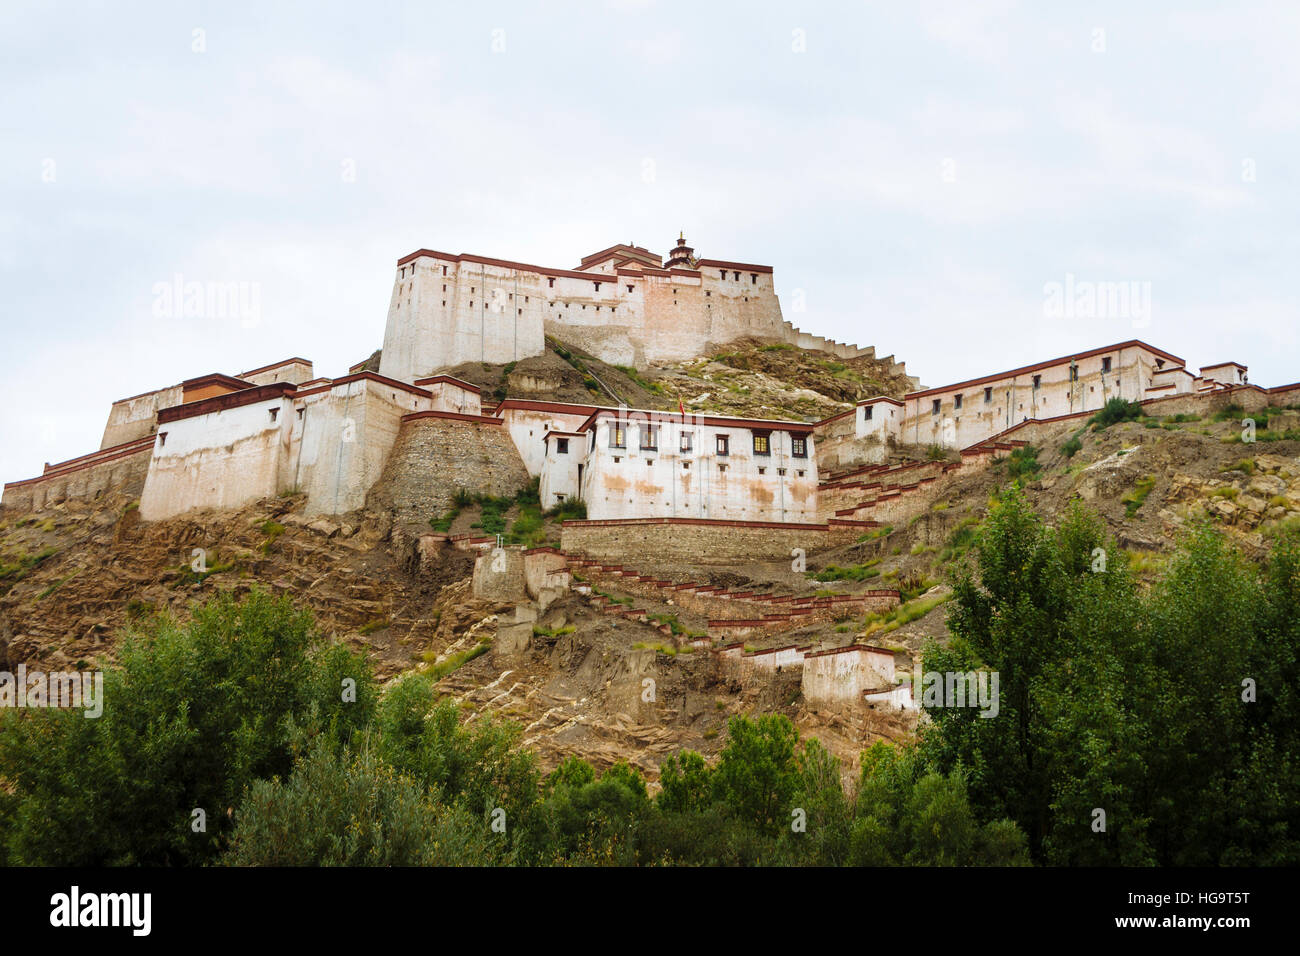 The view of the Great Gyantse Castle in the daytime. - Stock Image